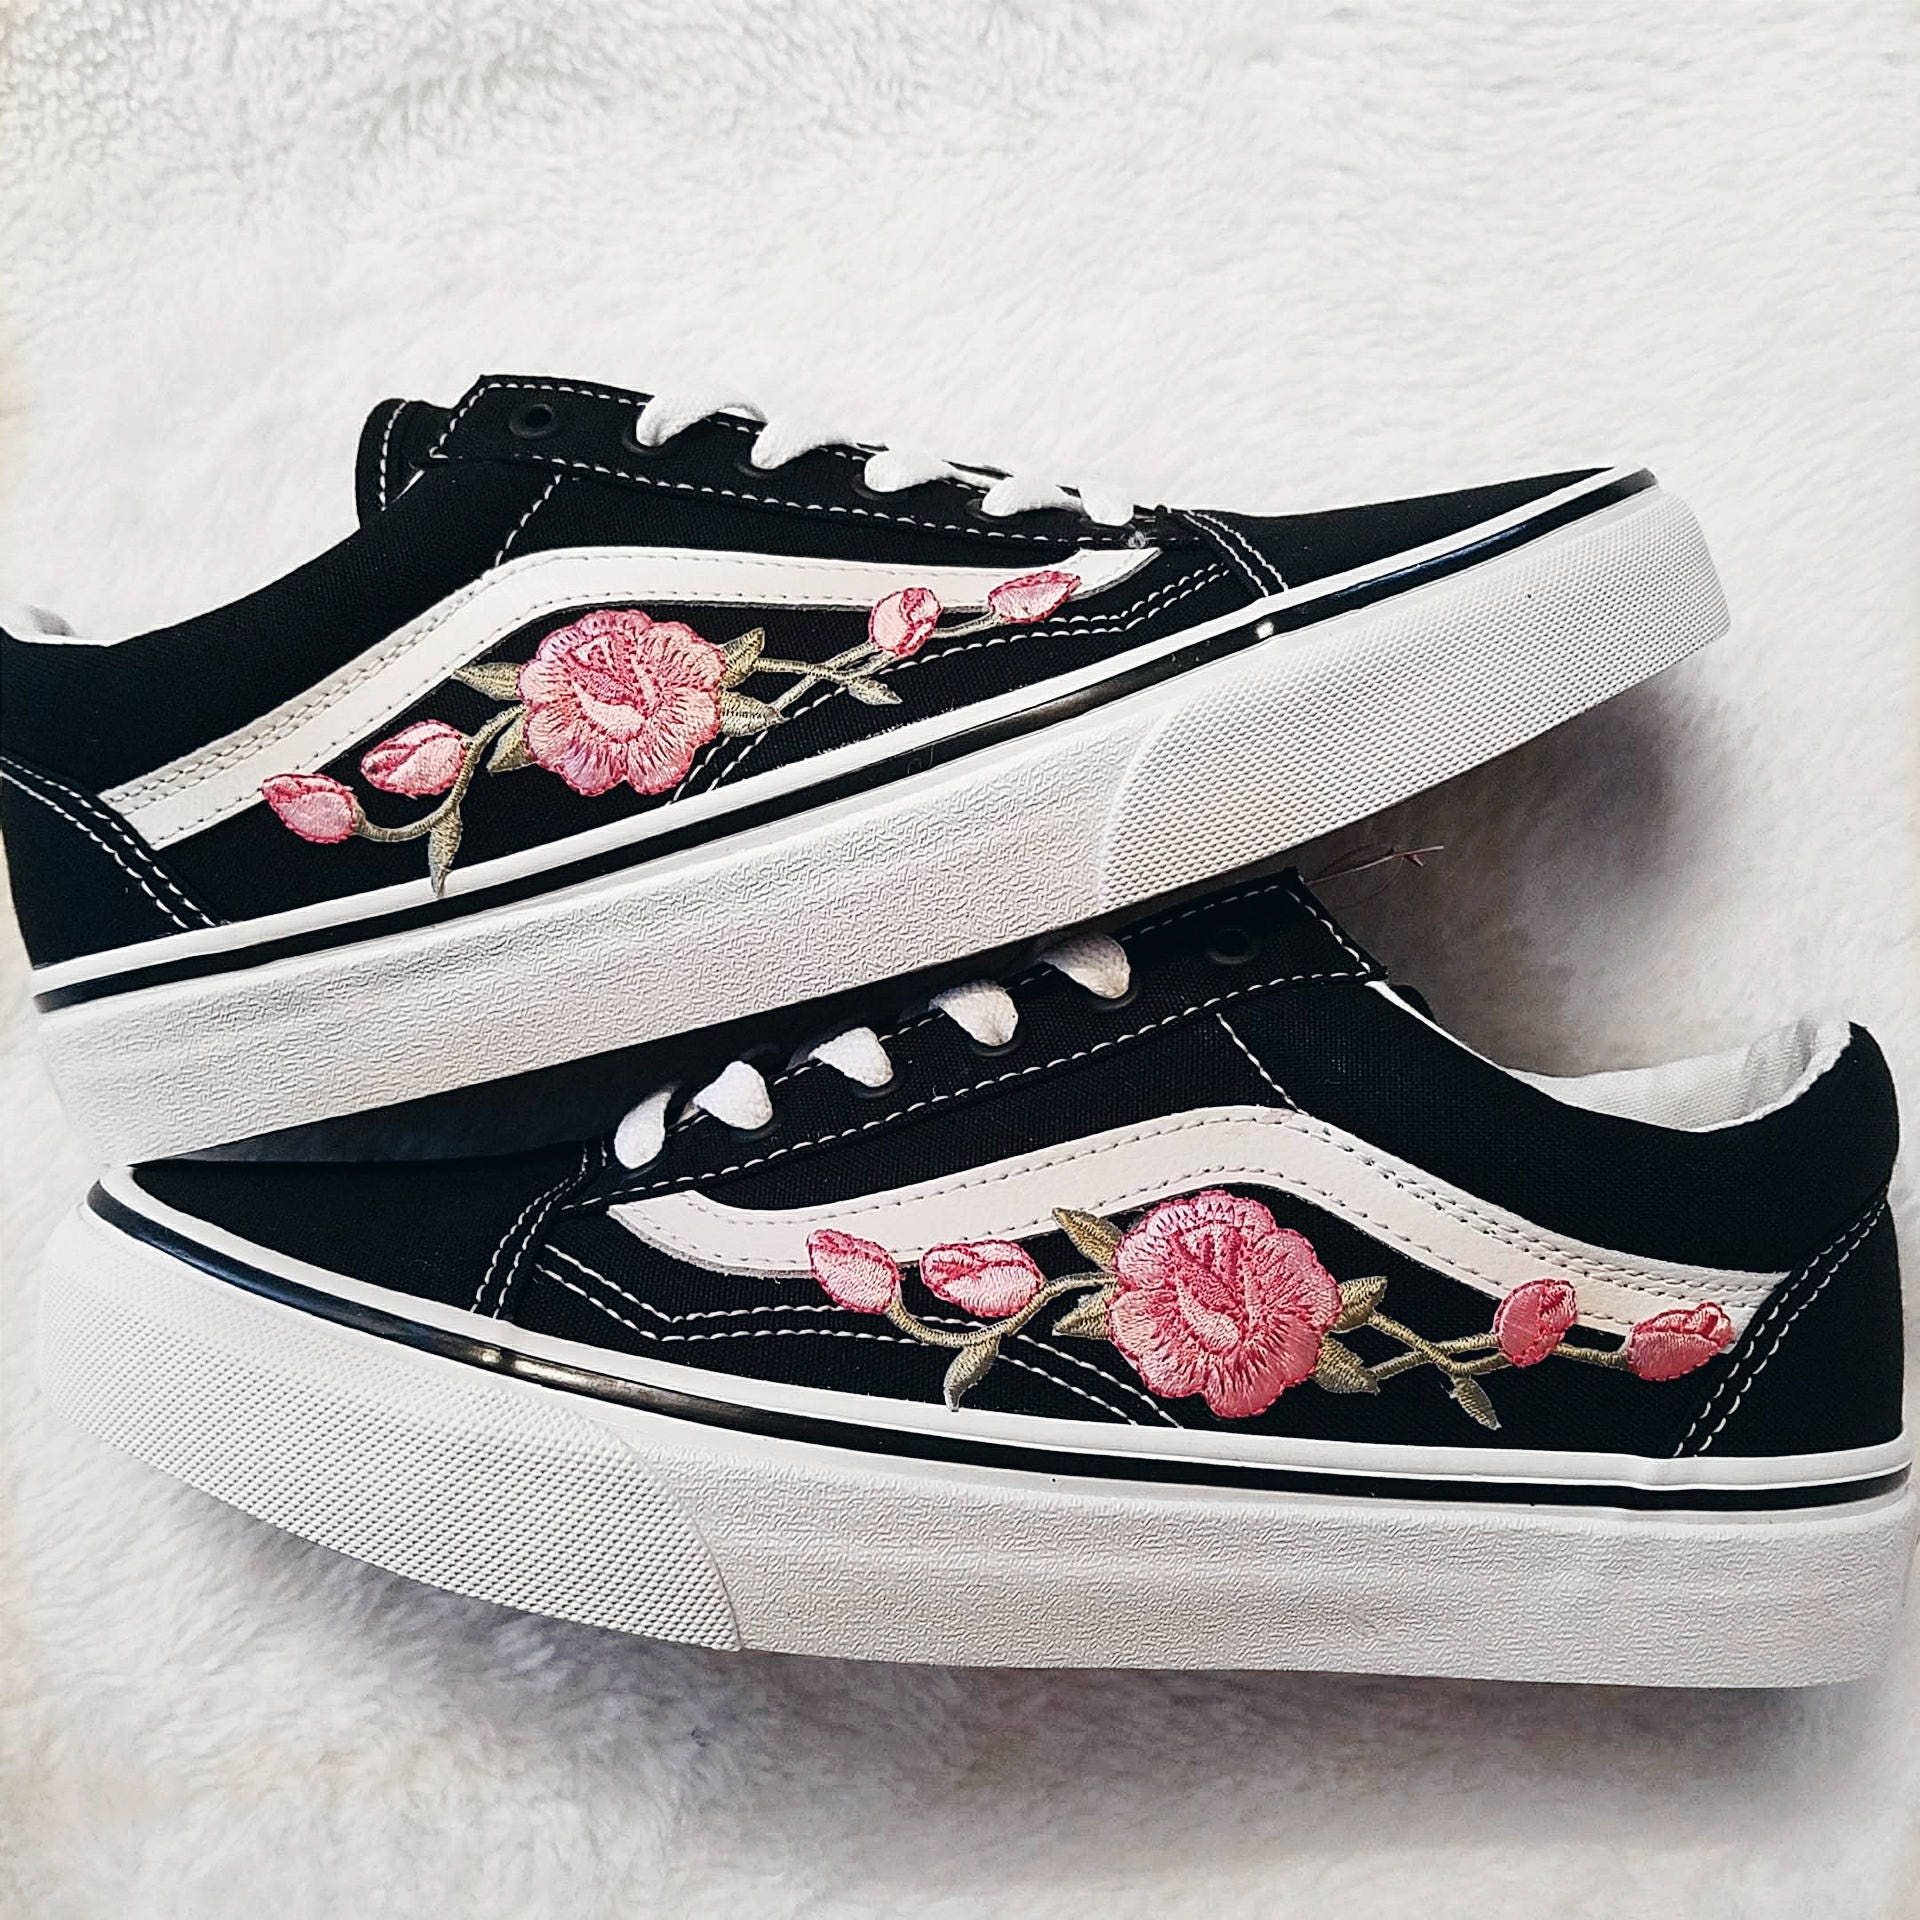 all black vans with pink roses